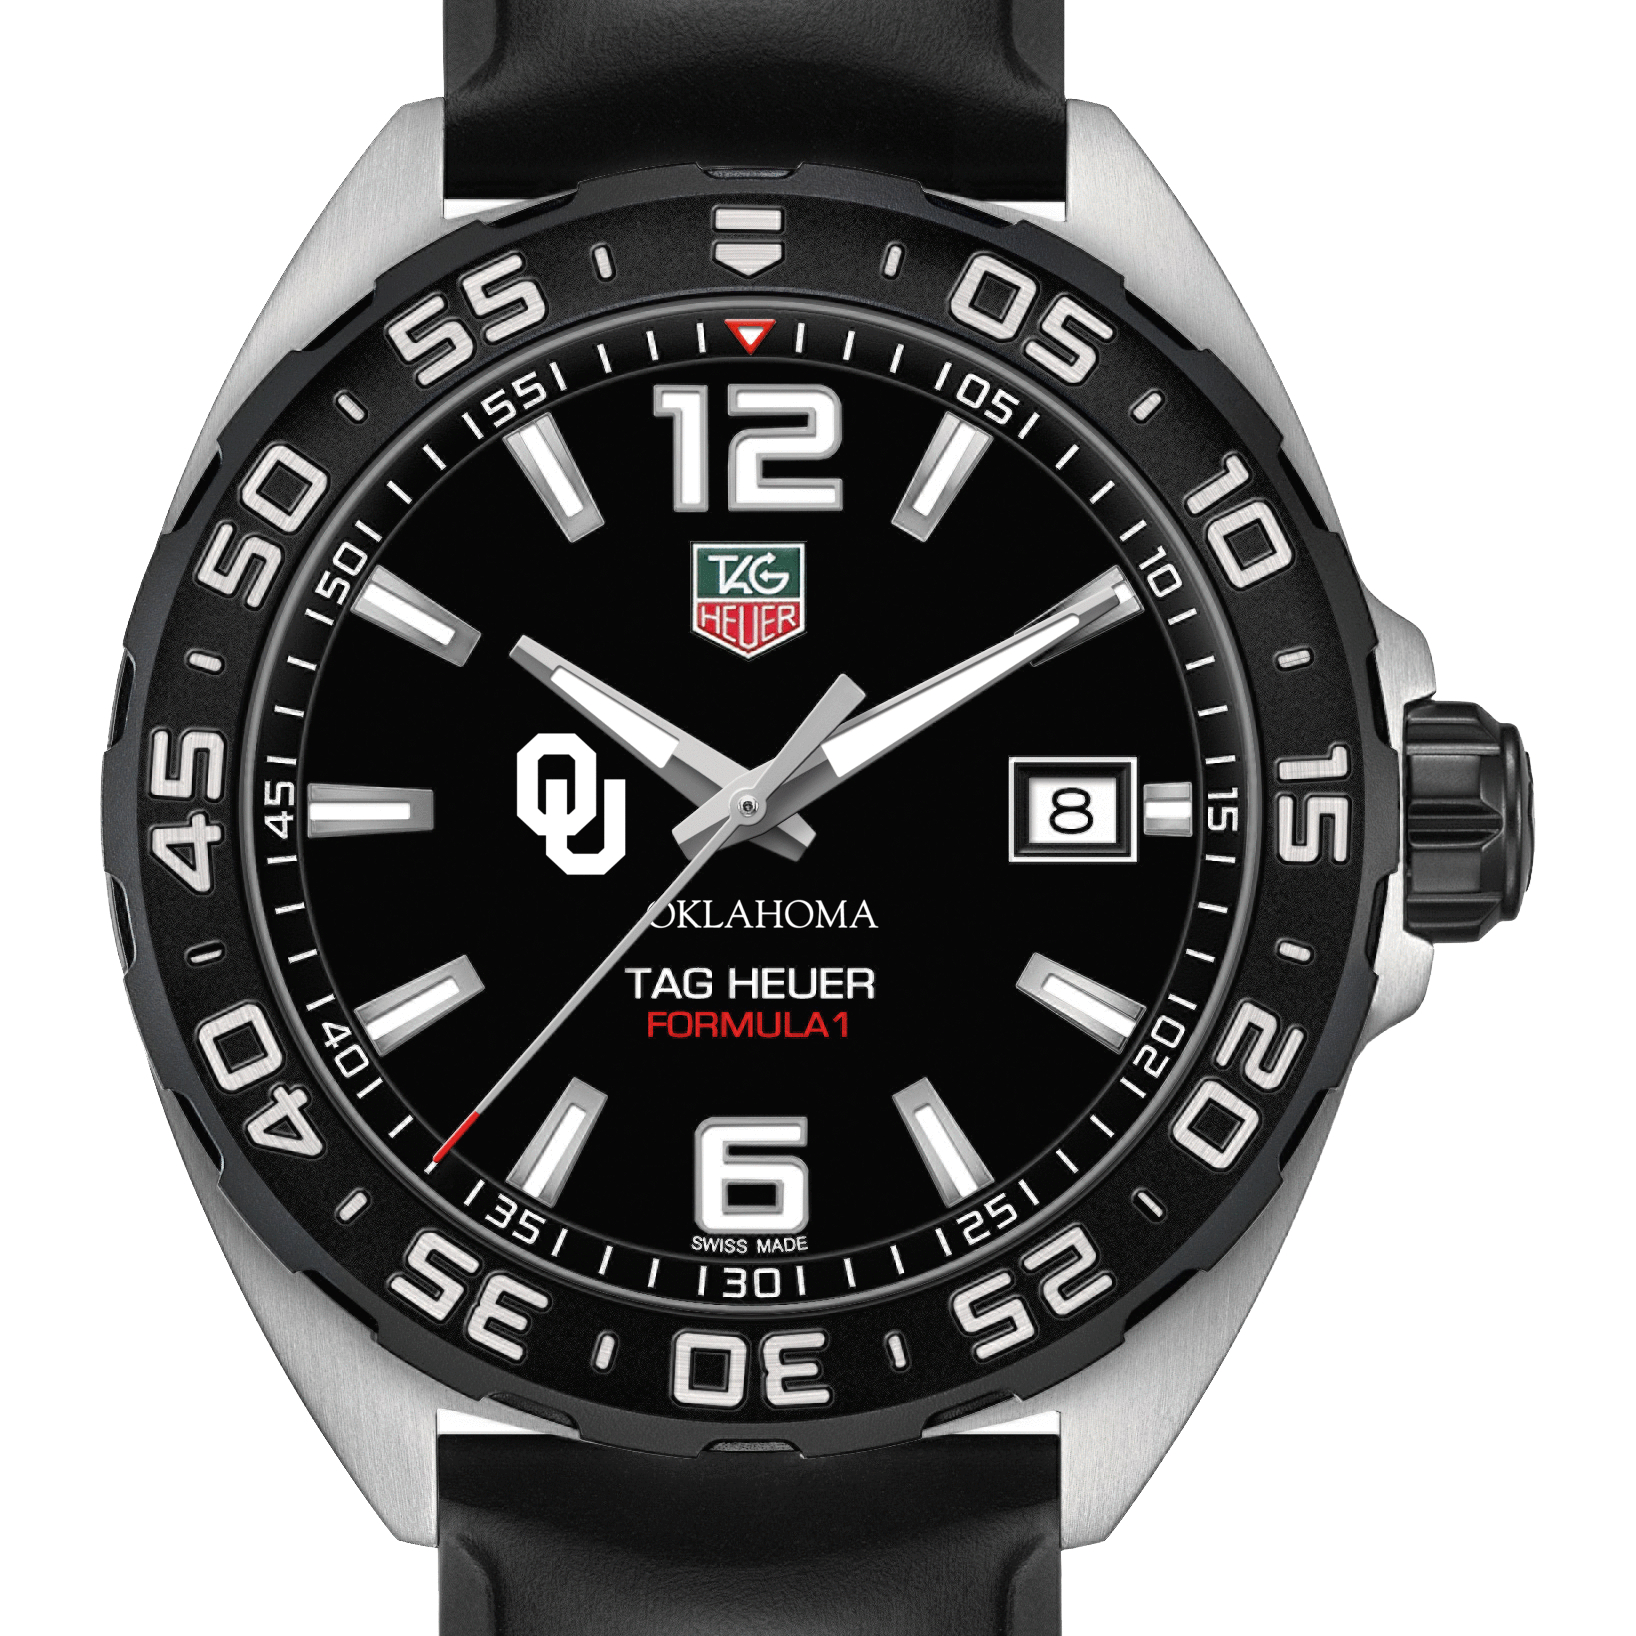 Oklahoma Men's TAG Heuer Formula 1 with Black Dial